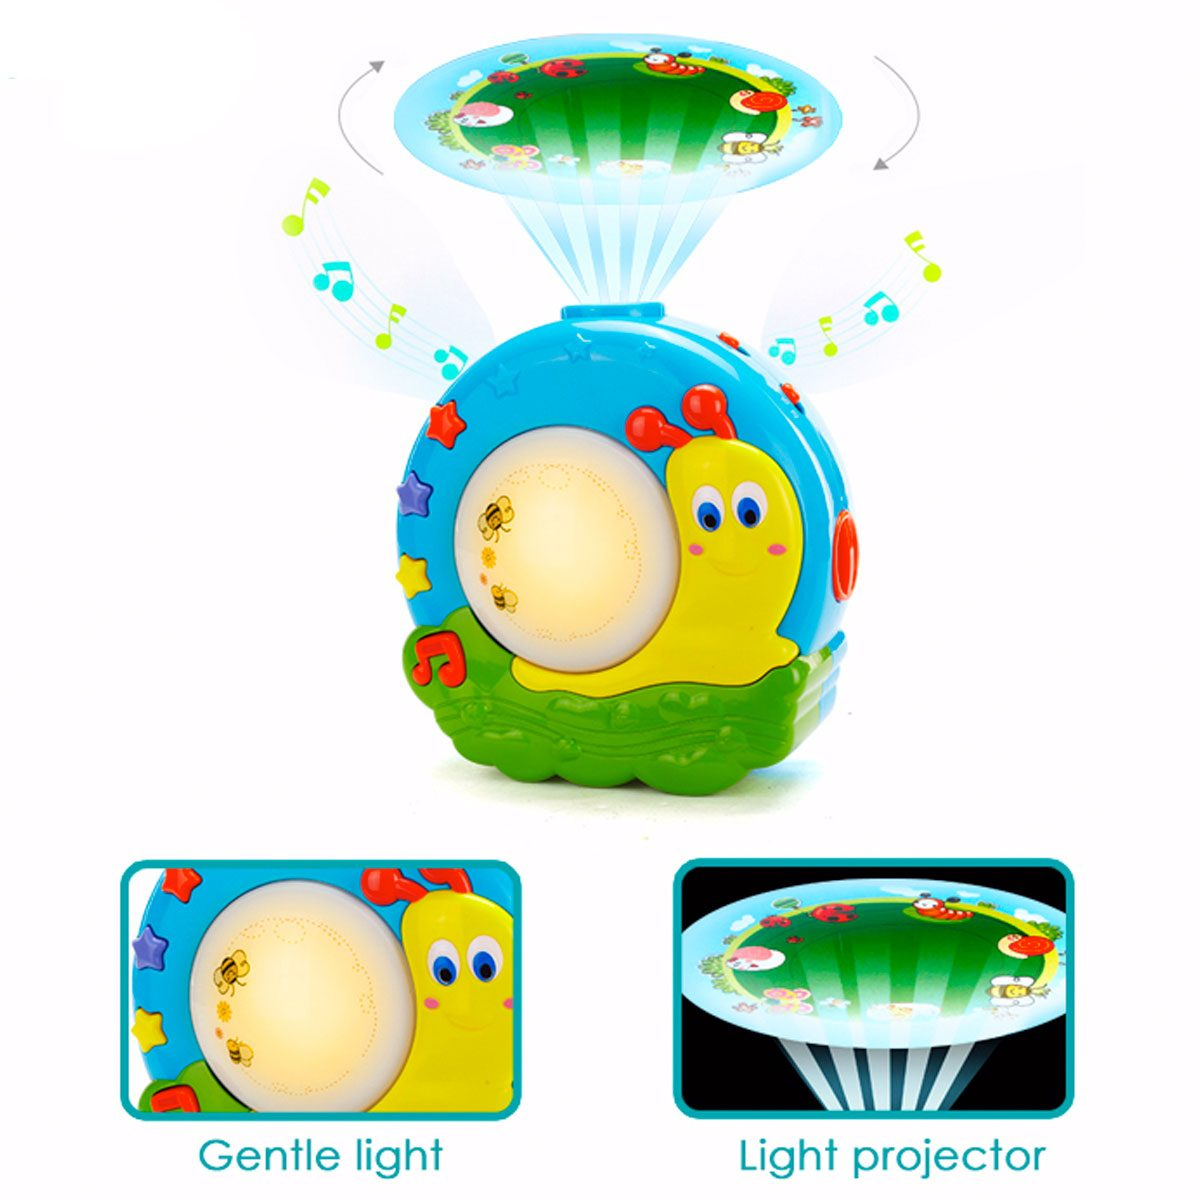 Soothing lightd and gentle projections help your child sleep